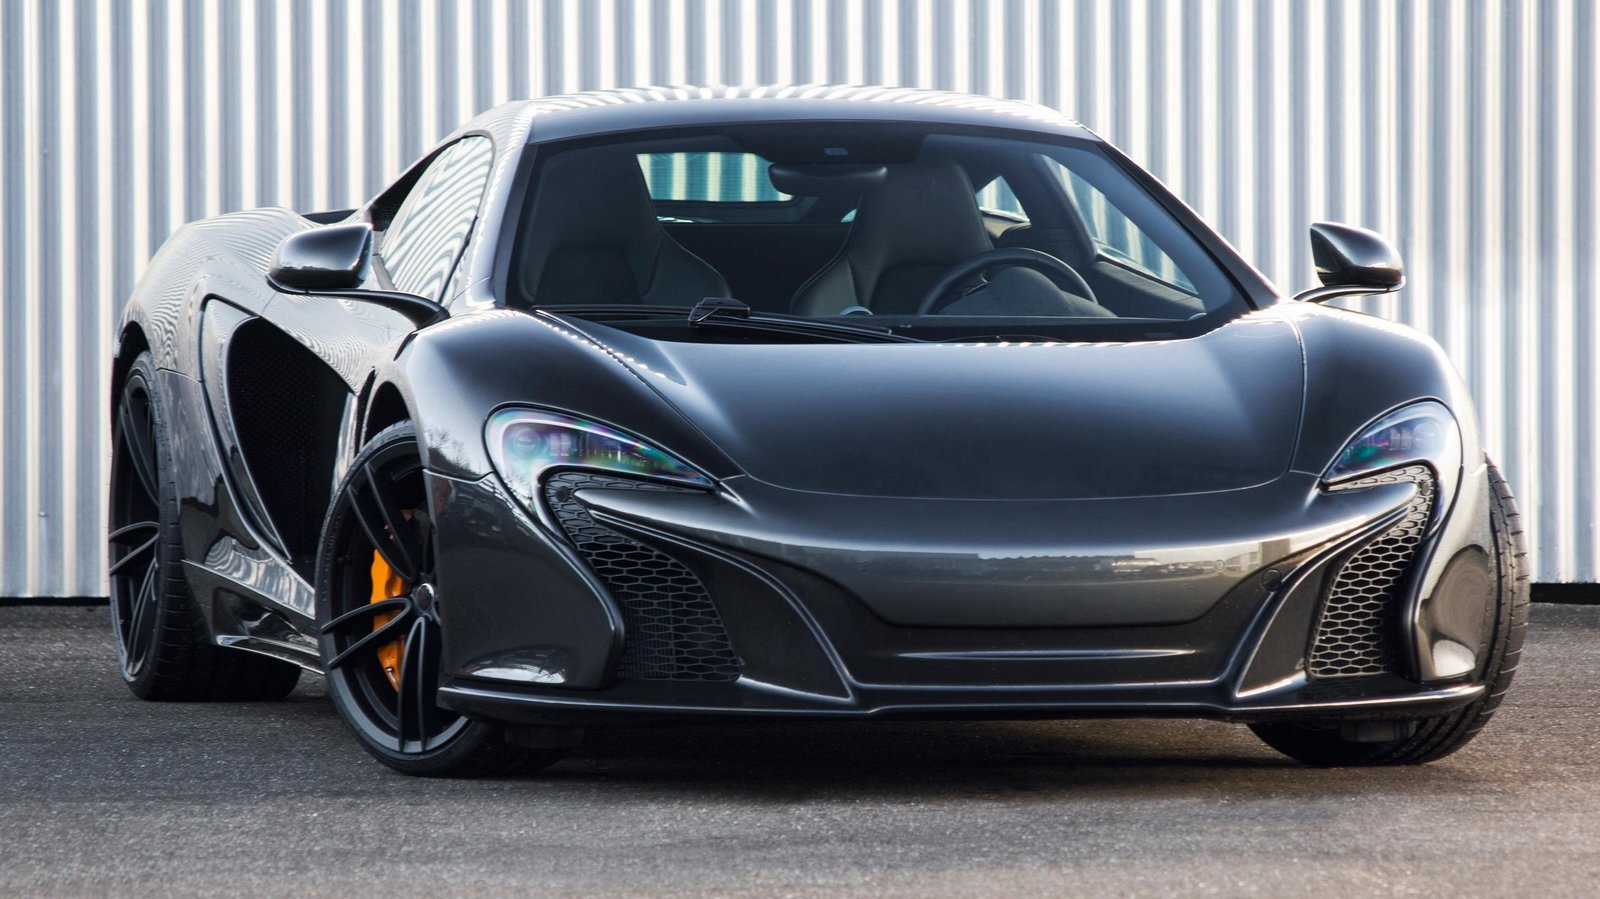 Cool Modified Cars Wallpapers 2016 Gemballa Mclaren 650s Dark Cars Wallpapers